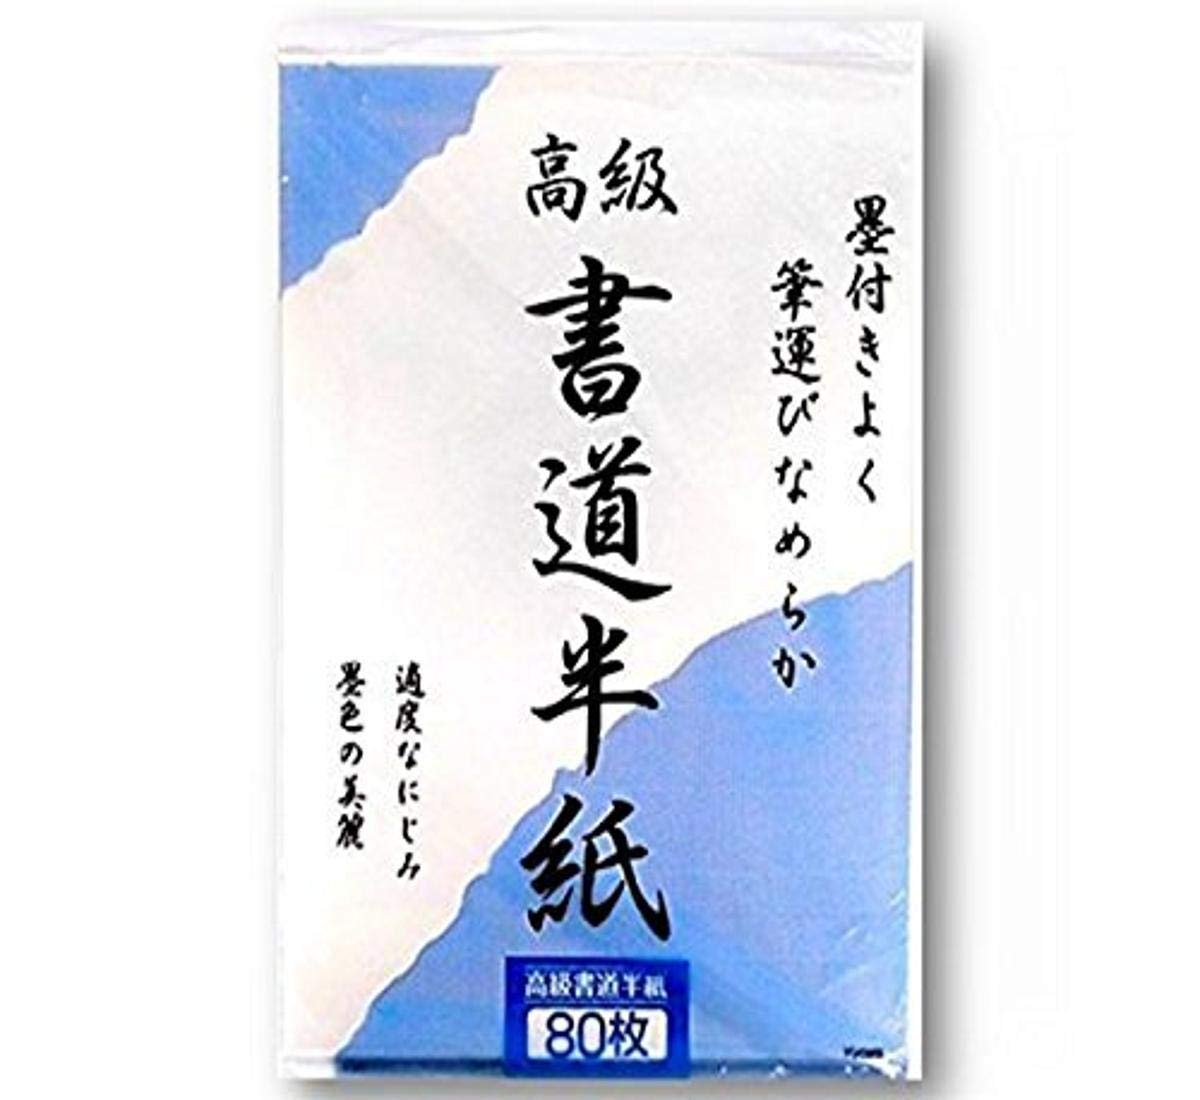 JapanBargain, Calligraphy Rice Paper Japanese Sumi Paper Chinese Brush Calligraphy Painting Practice Paper Ink Stamping Paper Made in Japan, 80 Sheets